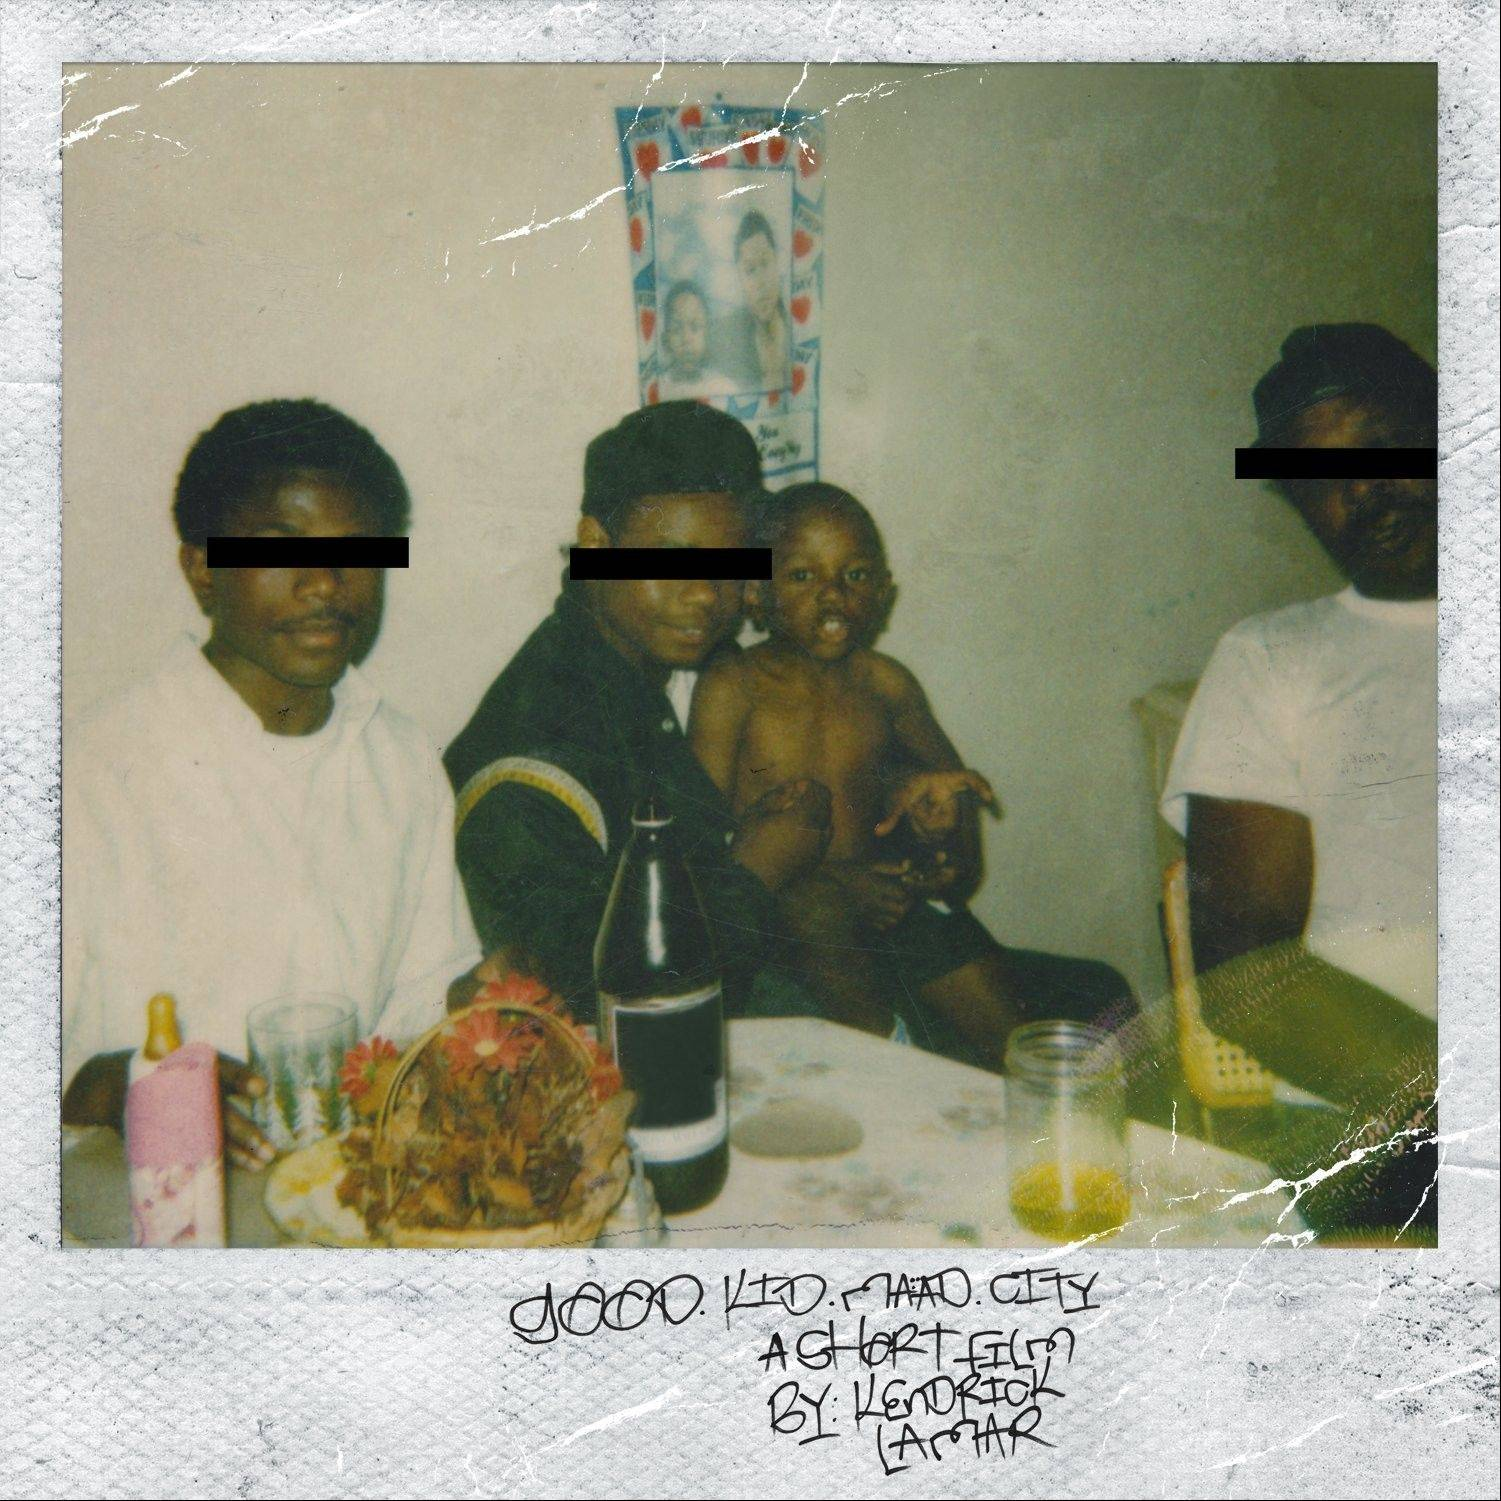 """Good Kid m.A.A.d. city"" by Kendrick Lamar"